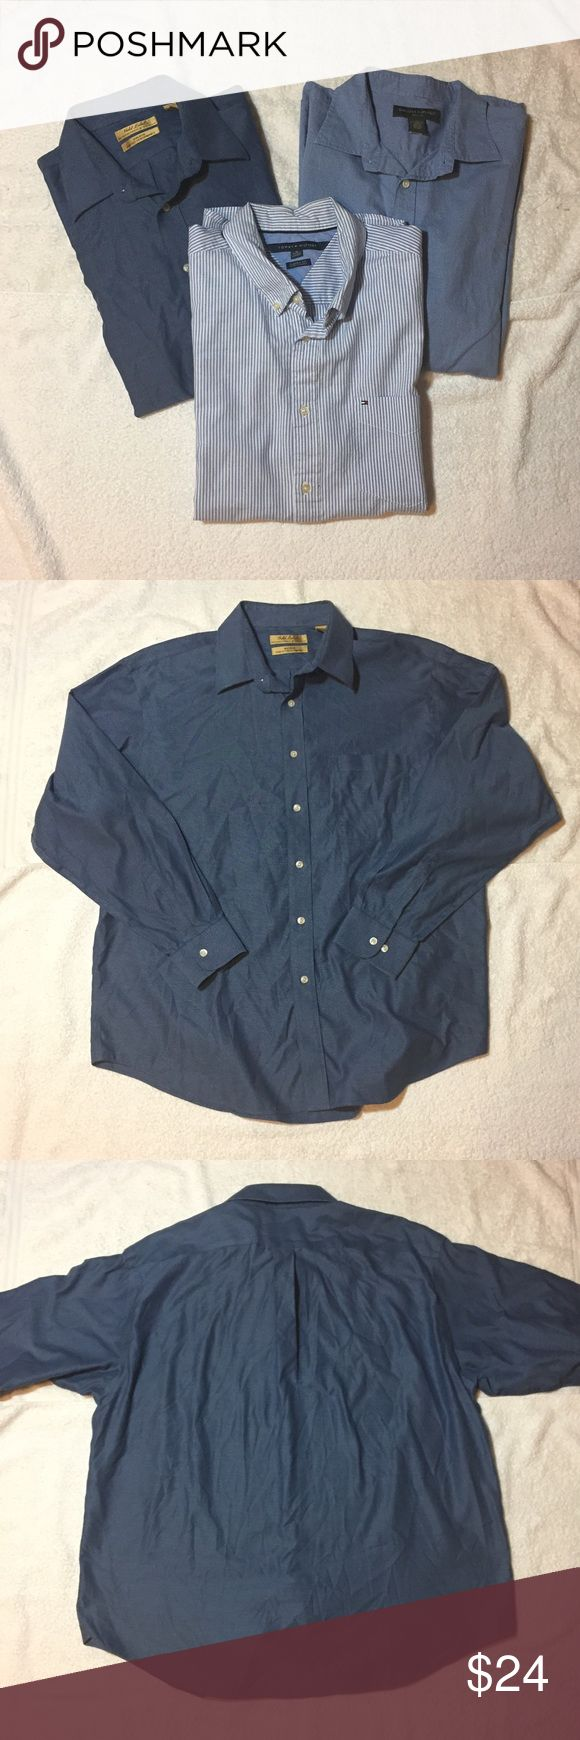 Bundle of 3 Men's XL Blue Patterned Dress Shirts Bundle of 3 Men's XL Blue Patterned Dress Shirts. All are 100% cotton. From left: Roundtree & York, Tommy Hilfiger Classic Fit, Banana Republic Relaxed Fit. Vrs/250/030717 Banana Republic Shirts Dress Shirts